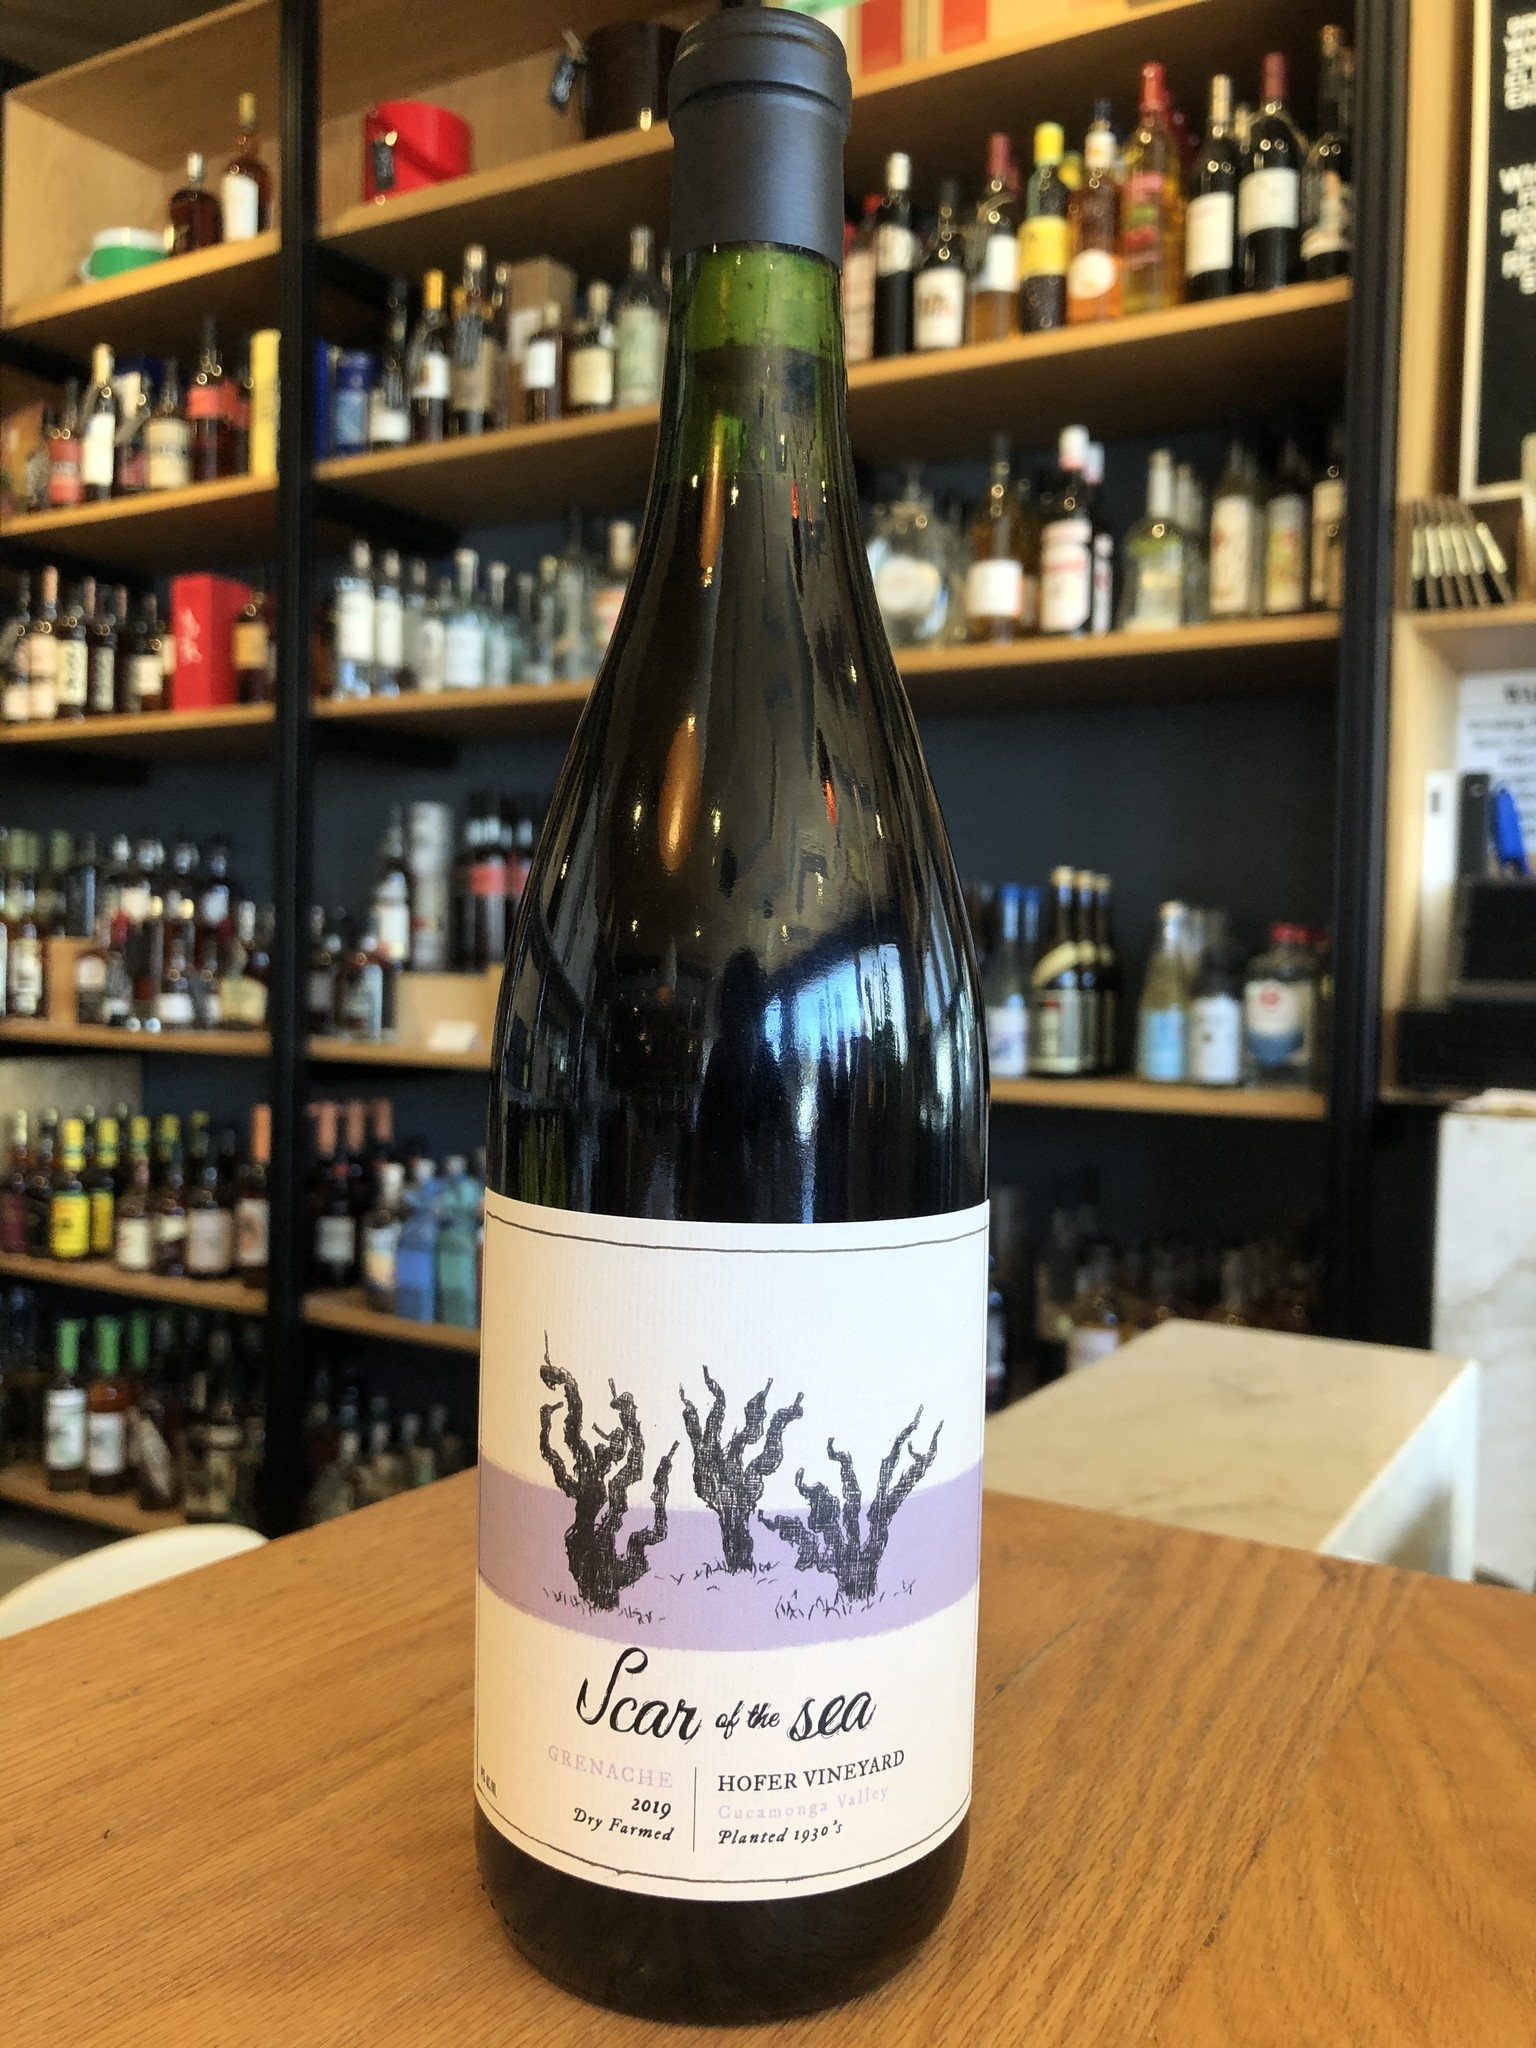 Scar of the Sea 2019 Scar of the Sea Hofer Vineyard Grenache 750ml